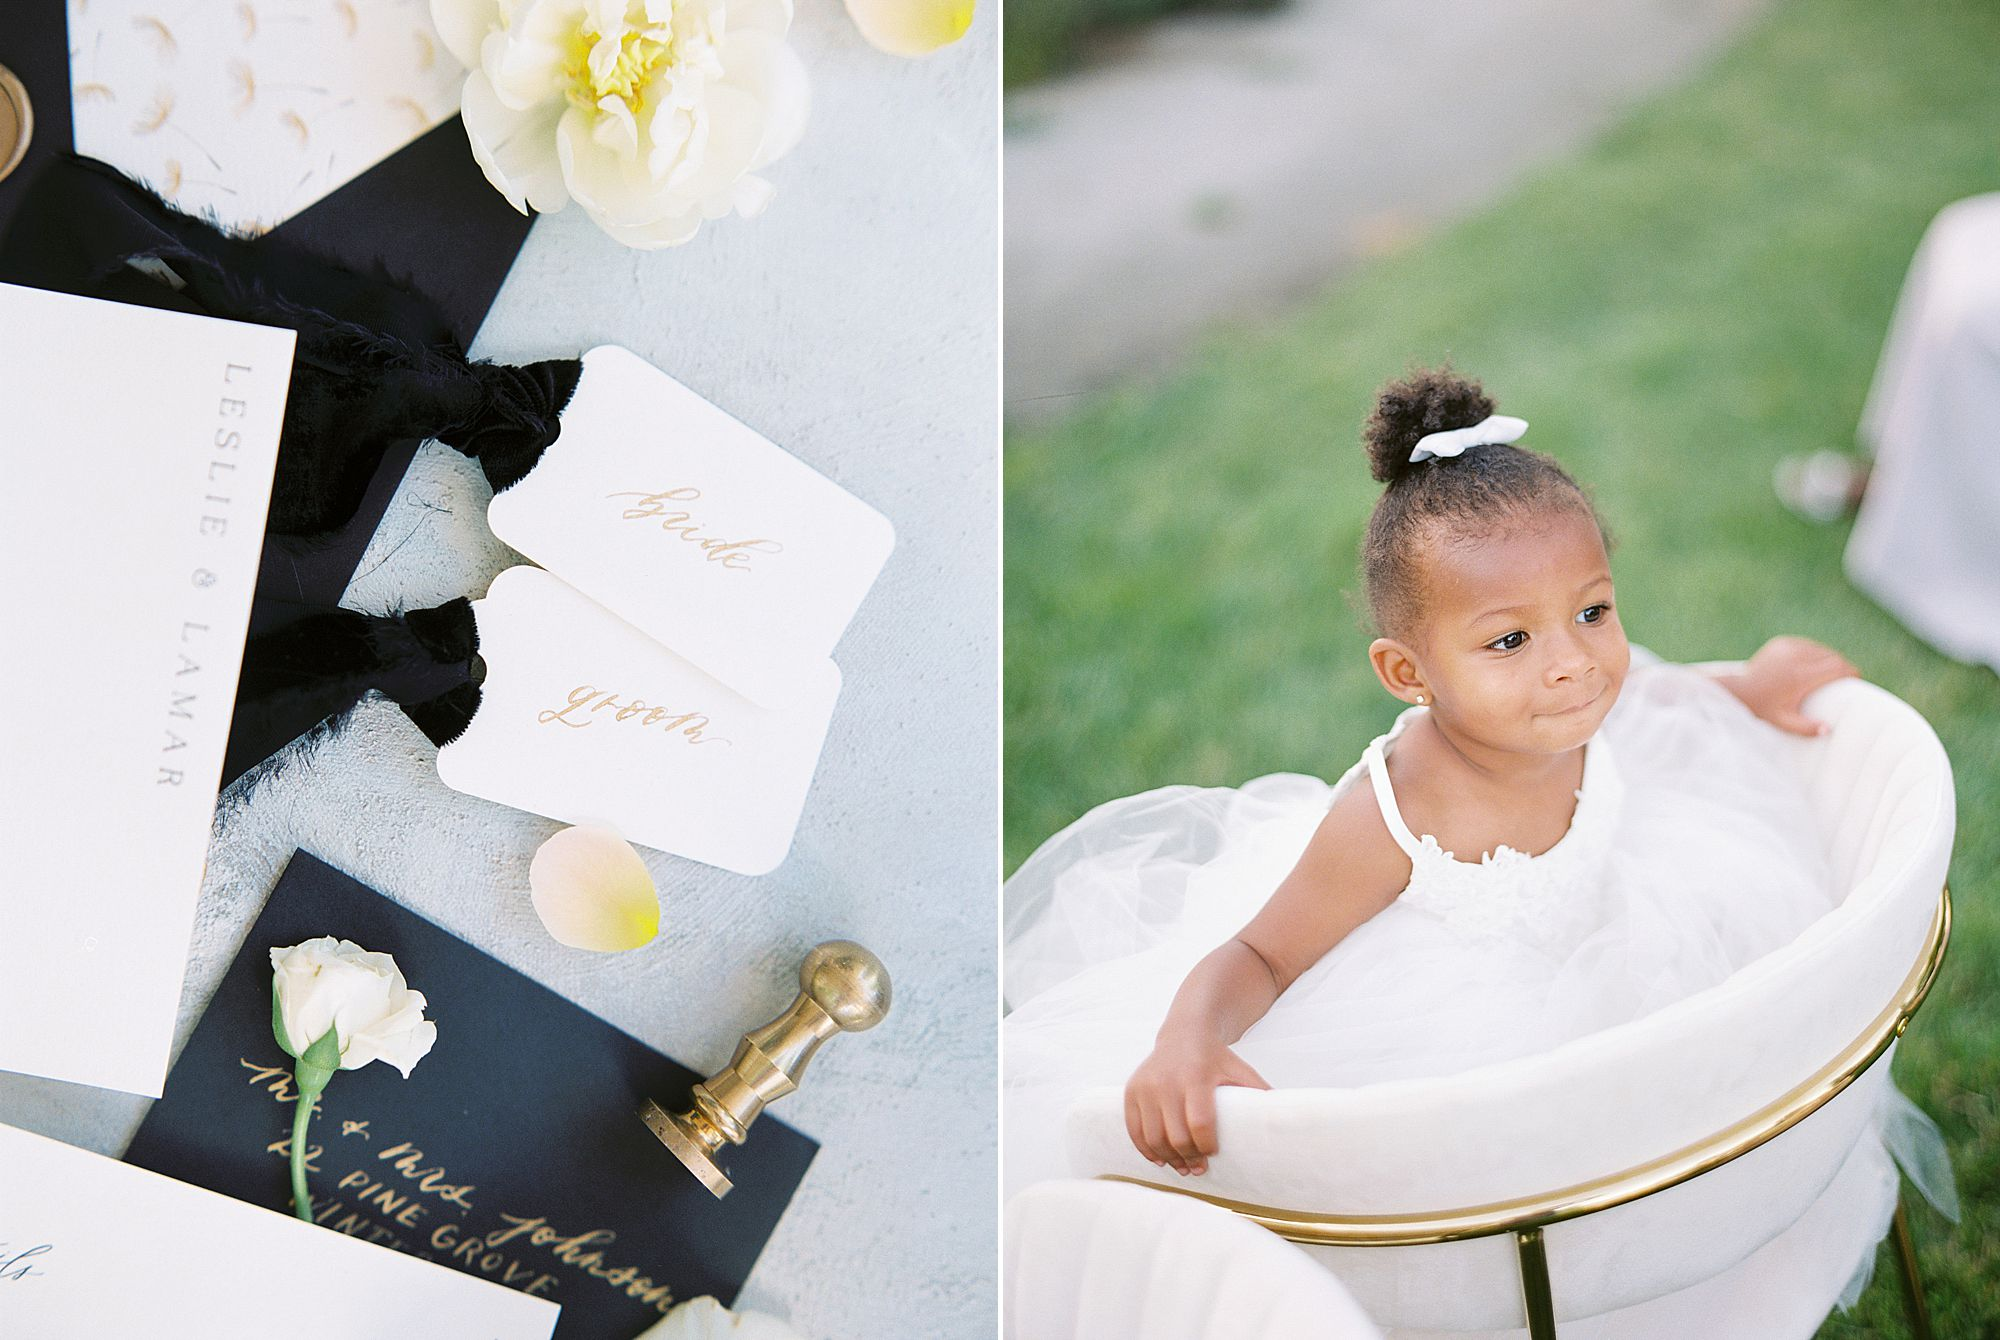 Park Winters Micro-Wedding Inspiration on Style Me Pretty - Stephanie Teague Events - Ashley Baumgartner - Park Winters Wedding - Black Tie Wedding - Micro-Wedding Sacramento Photographer_0035.jpg